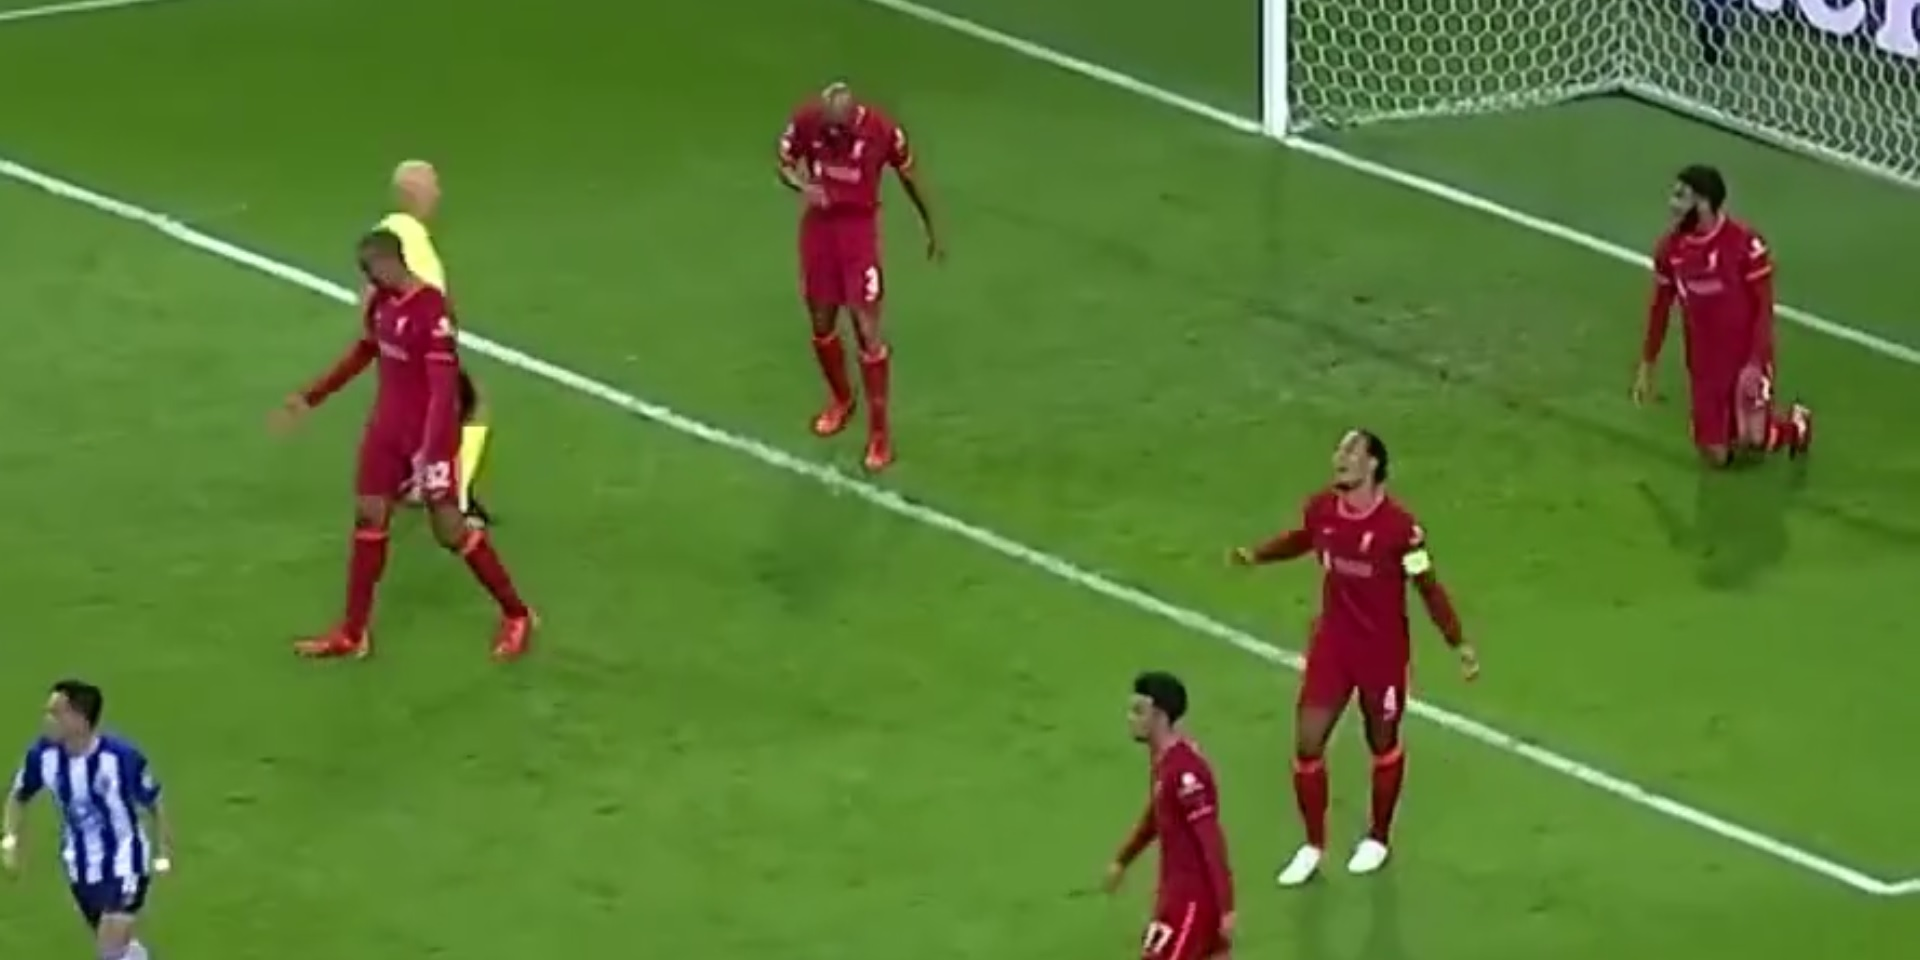 (Video) Liverpool fans need to see van Dijk & Matip's reaction to conceding to Porto